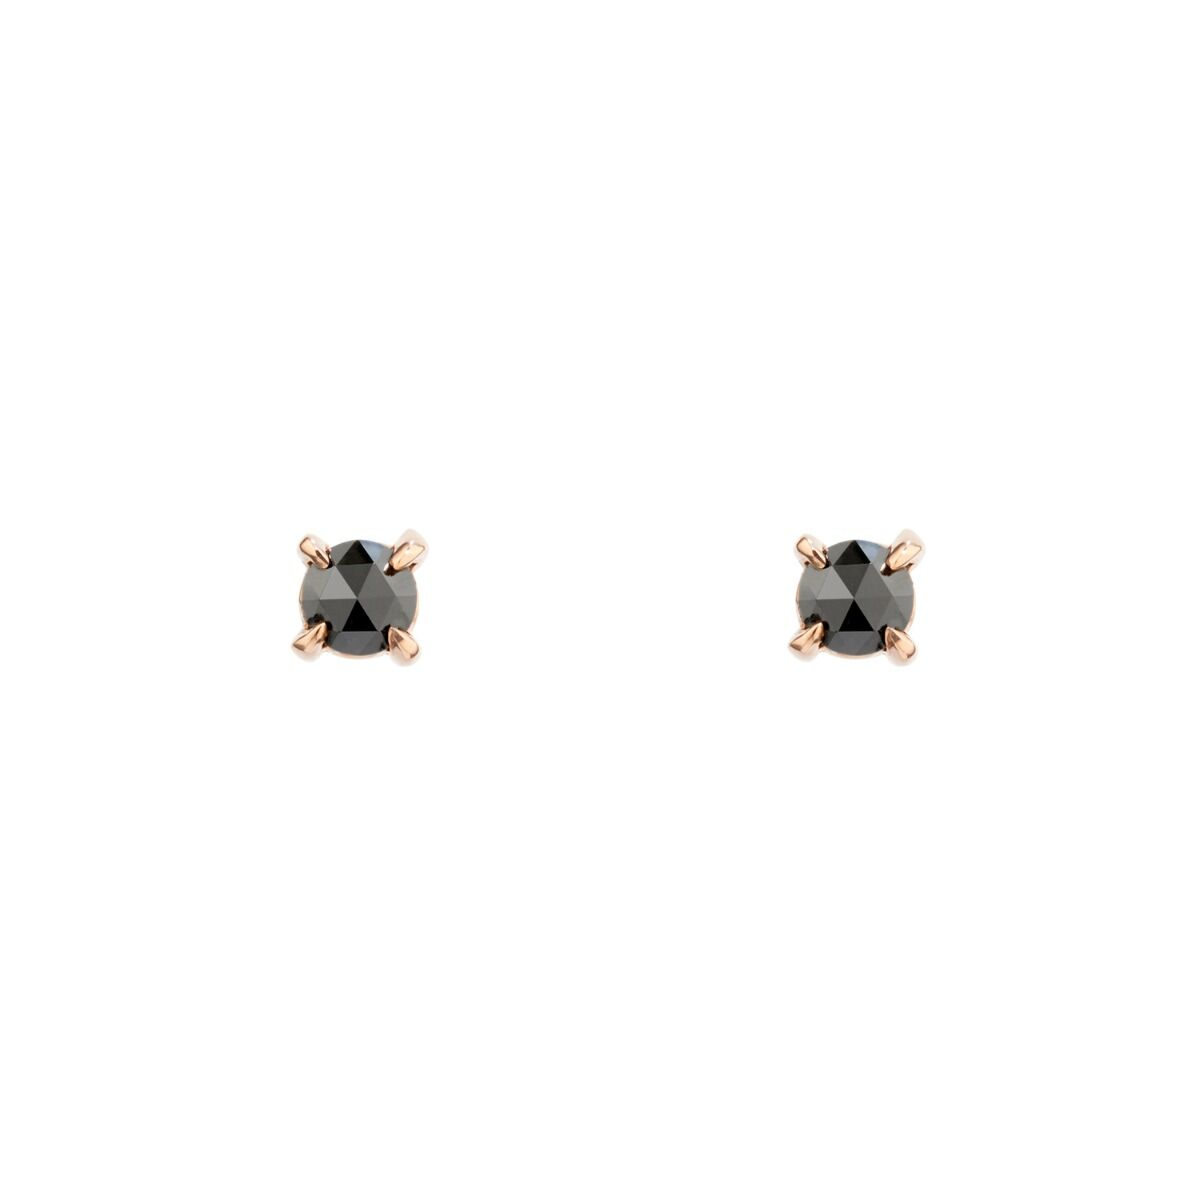 Maleficent Black Diamond Stud (single) image